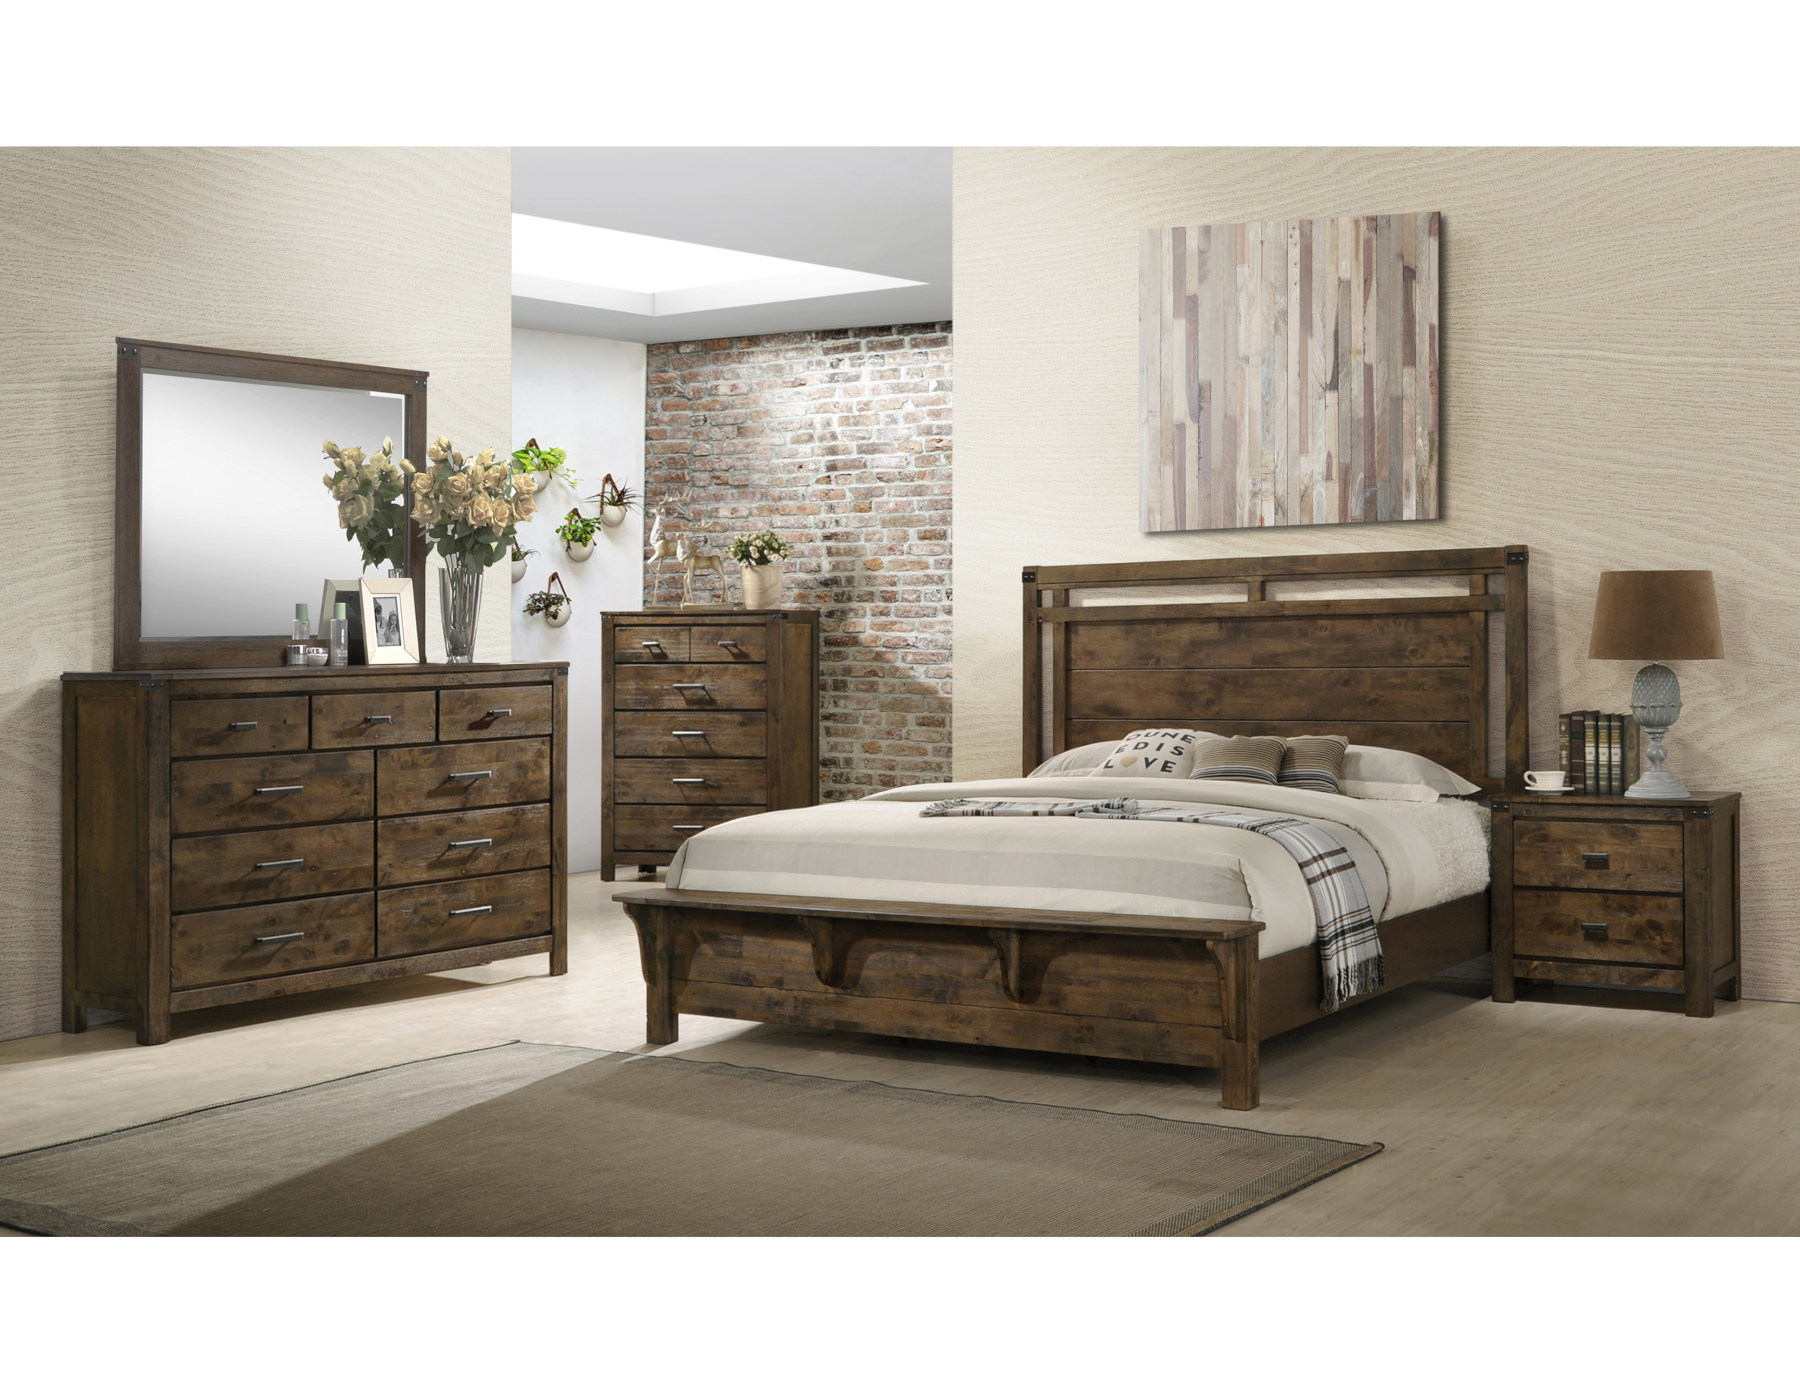 23170 – Bedroom Set – CMK-4800